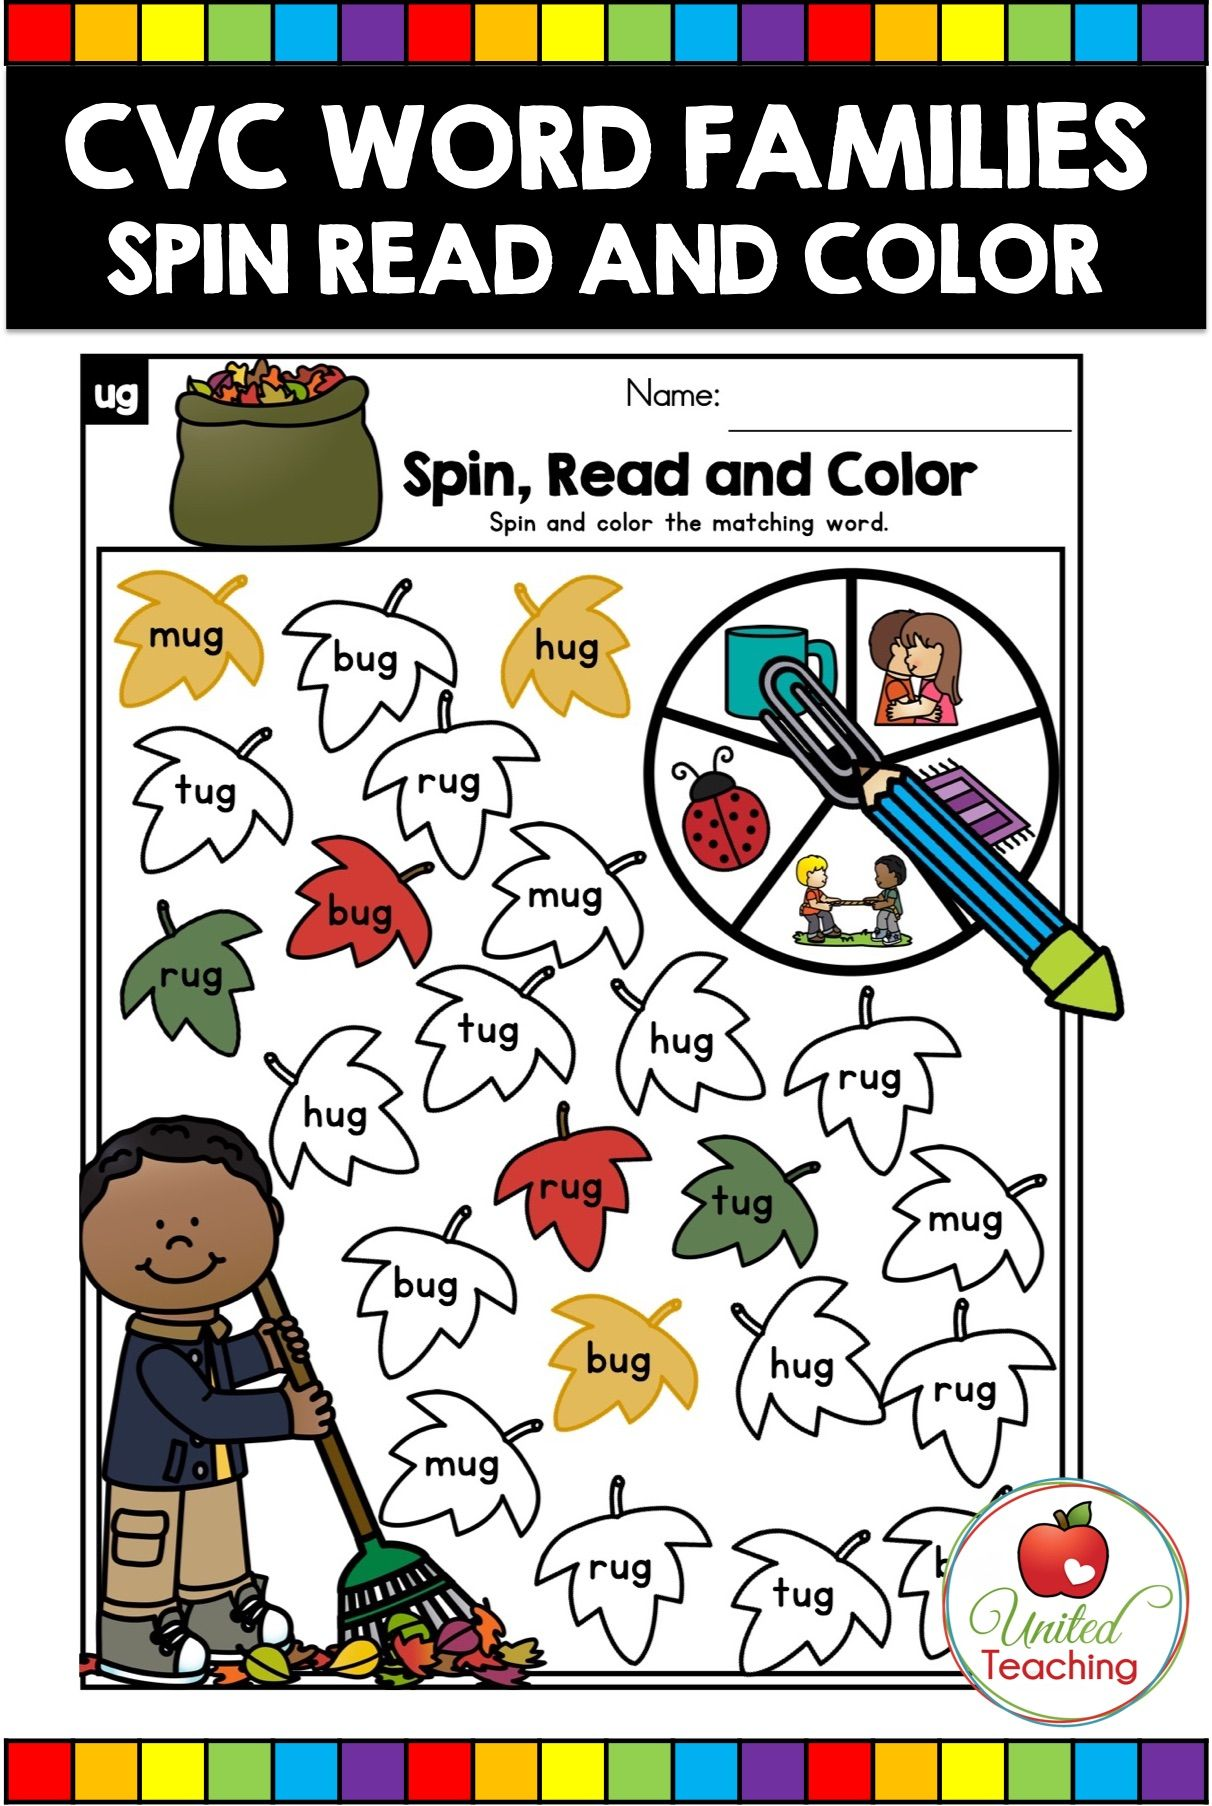 Cvc Words Spin And Color Worksheets Cvc Word Families Cvc Words Word Families Word Work [ 1806 x 1212 Pixel ]